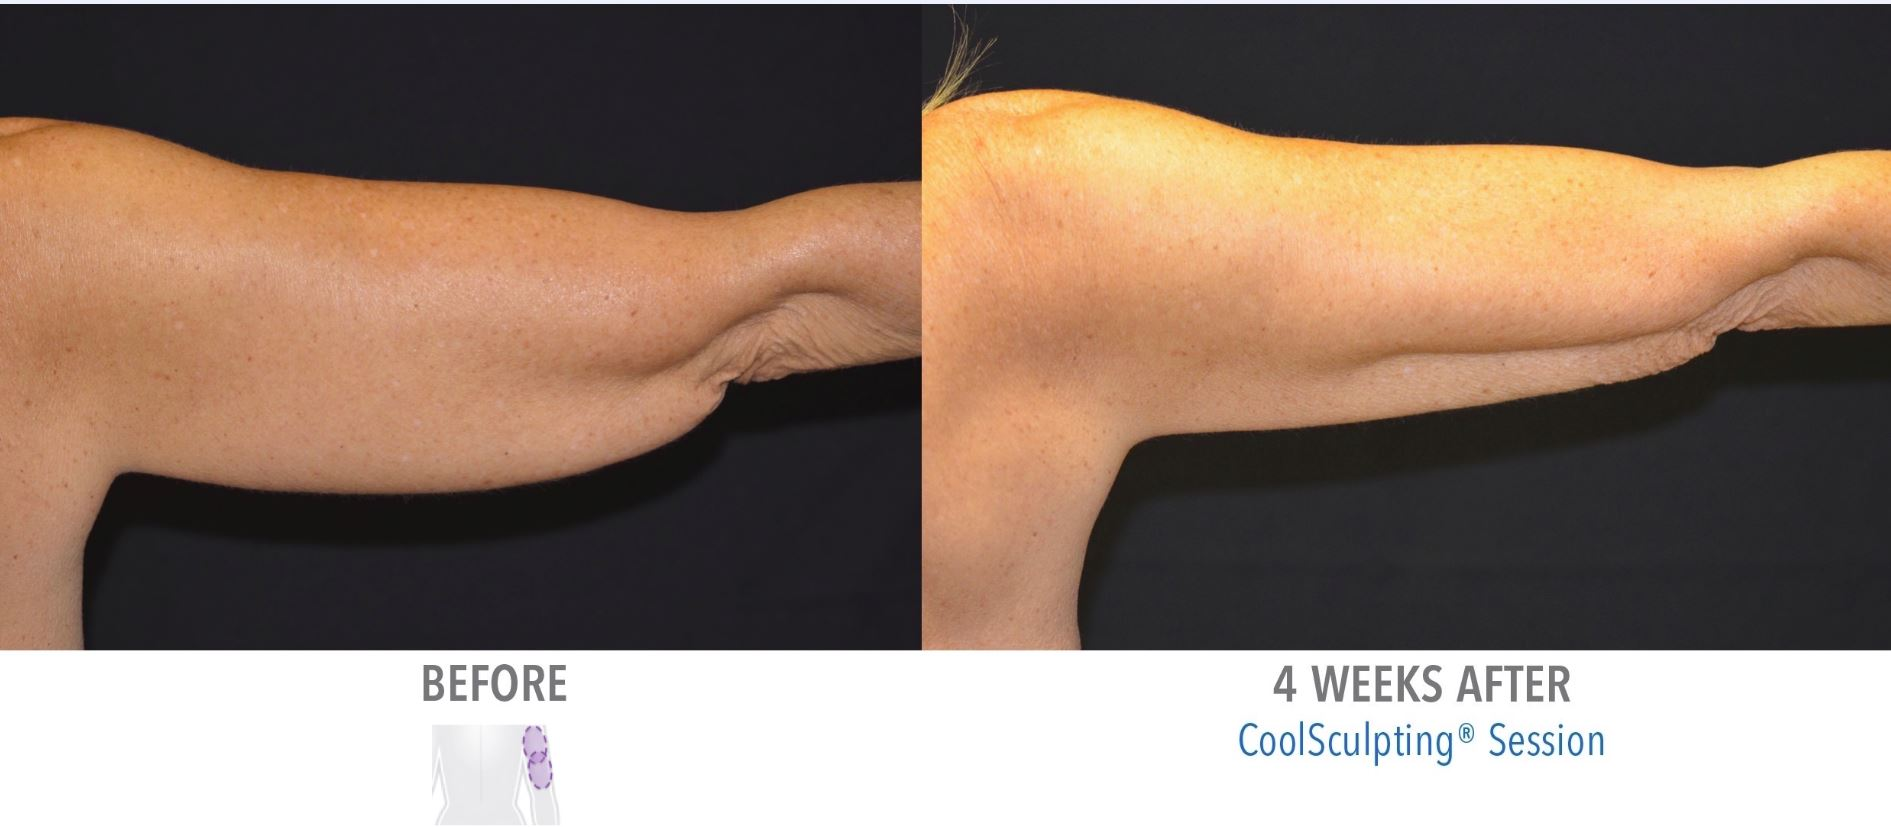 CoolSculpting Arms Before and After Result